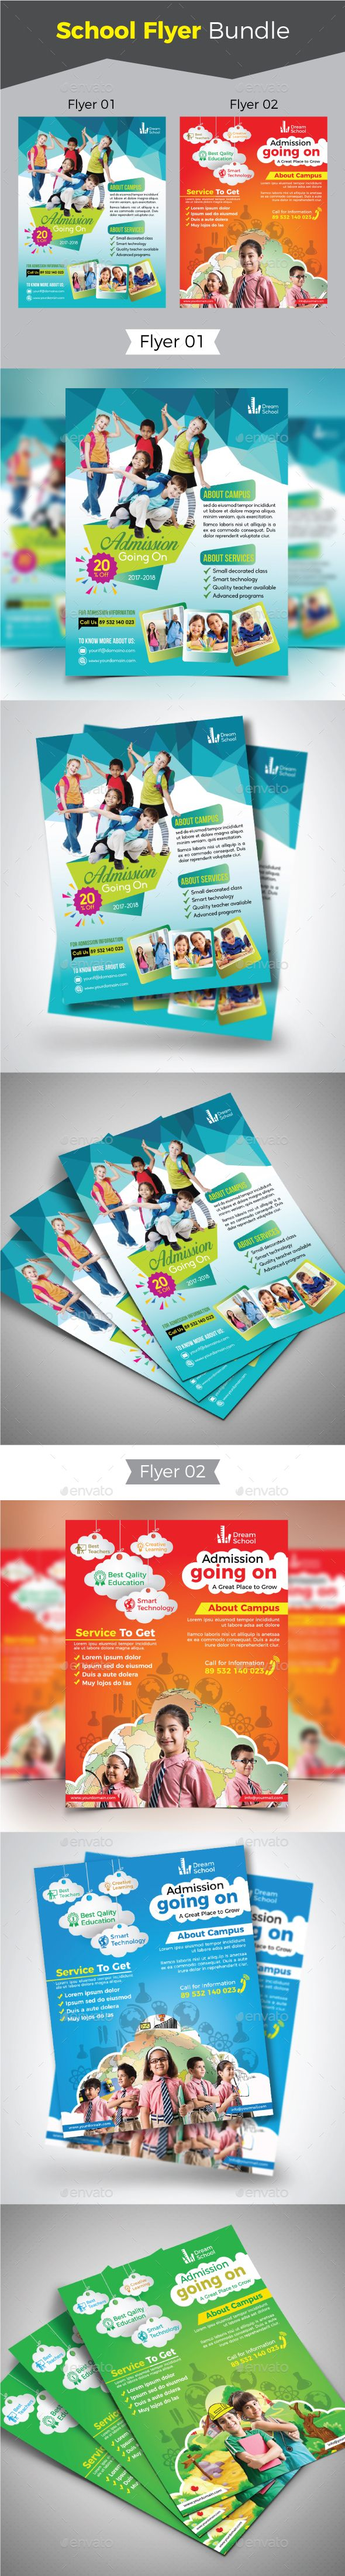 School Flyer Template Bundle Vector Eps Ai Illustrator Flyer